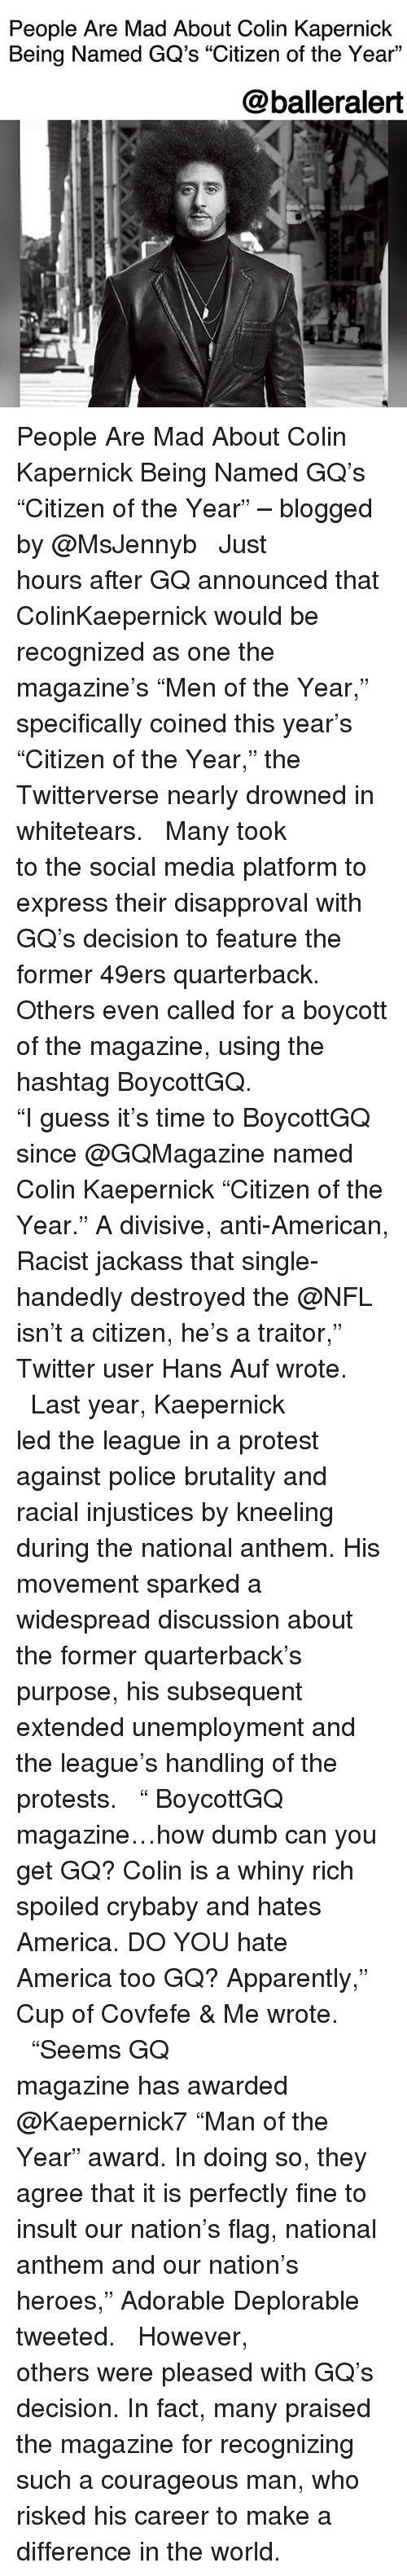 """San Francisco 49ers, America, and Apparently: People Are Mad About Colin Kapernick  Being Named GQ's """"Citizen of the Year""""  L.  @balleralert People Are Mad About Colin Kapernick Being Named GQ's """"Citizen of the Year"""" – blogged by @MsJennyb ⠀⠀⠀⠀⠀⠀⠀ ⠀⠀⠀⠀⠀⠀⠀ Just hours after GQ announced that ColinKaepernick would be recognized as one the magazine's """"Men of the Year,"""" specifically coined this year's """"Citizen of the Year,"""" the Twitterverse nearly drowned in whitetears. ⠀⠀⠀⠀⠀⠀⠀ ⠀⠀⠀⠀⠀⠀⠀ Many took to the social media platform to express their disapproval with GQ's decision to feature the former 49ers quarterback. Others even called for a boycott of the magazine, using the hashtag BoycottGQ. ⠀⠀⠀⠀⠀⠀⠀ ⠀⠀⠀⠀⠀⠀⠀ """"I guess it's time to BoycottGQ since @GQMagazine named Colin Kaepernick """"Citizen of the Year."""" A divisive, anti-American, Racist jackass that single-handedly destroyed the @NFL isn't a citizen, he's a traitor,"""" Twitter user Hans Auf wrote. ⠀⠀⠀⠀⠀⠀⠀ ⠀⠀⠀⠀⠀⠀⠀ Last year, Kaepernick led the league in a protest against police brutality and racial injustices by kneeling during the national anthem. His movement sparked a widespread discussion about the former quarterback's purpose, his subsequent extended unemployment and the league's handling of the protests. ⠀⠀⠀⠀⠀⠀⠀ ⠀⠀⠀⠀⠀⠀⠀ """" BoycottGQ magazine…how dumb can you get GQ? Colin is a whiny rich spoiled crybaby and hates America. DO YOU hate America too GQ? Apparently,"""" Cup of Covfefe & Me wrote. ⠀⠀⠀⠀⠀⠀⠀ ⠀⠀⠀⠀⠀⠀⠀ """"Seems GQ magazine has awarded @Kaepernick7 """"Man of the Year"""" award. In doing so, they agree that it is perfectly fine to insult our nation's flag, national anthem and our nation's heroes,"""" Adorable Deplorable tweeted. ⠀⠀⠀⠀⠀⠀⠀ ⠀⠀⠀⠀⠀⠀⠀ However, others were pleased with GQ's decision. In fact, many praised the magazine for recognizing such a courageous man, who risked his career to make a difference in the world."""